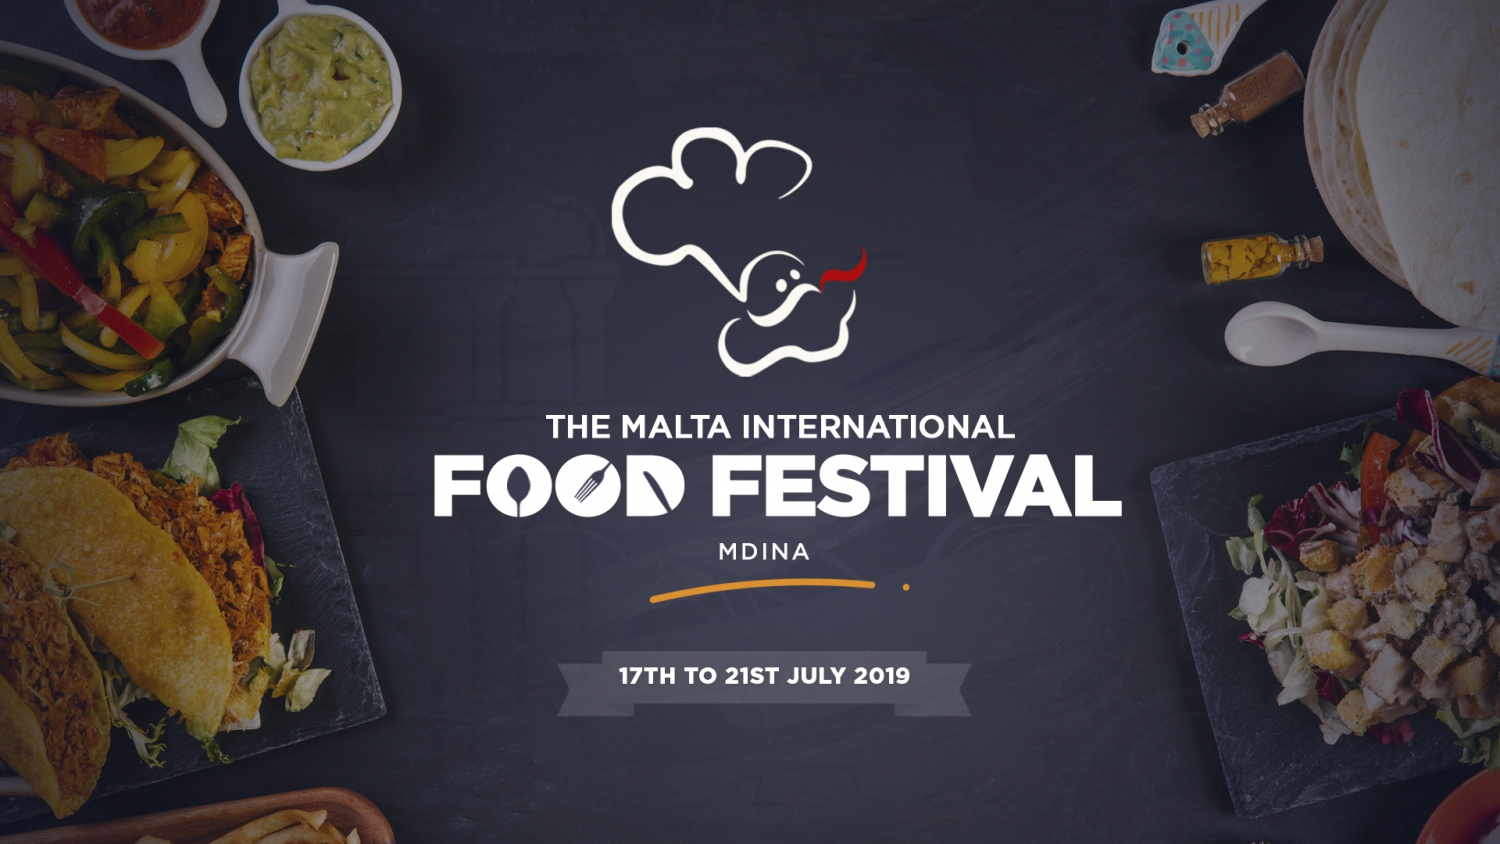 Malta International Food Festival 2019 - Mdina